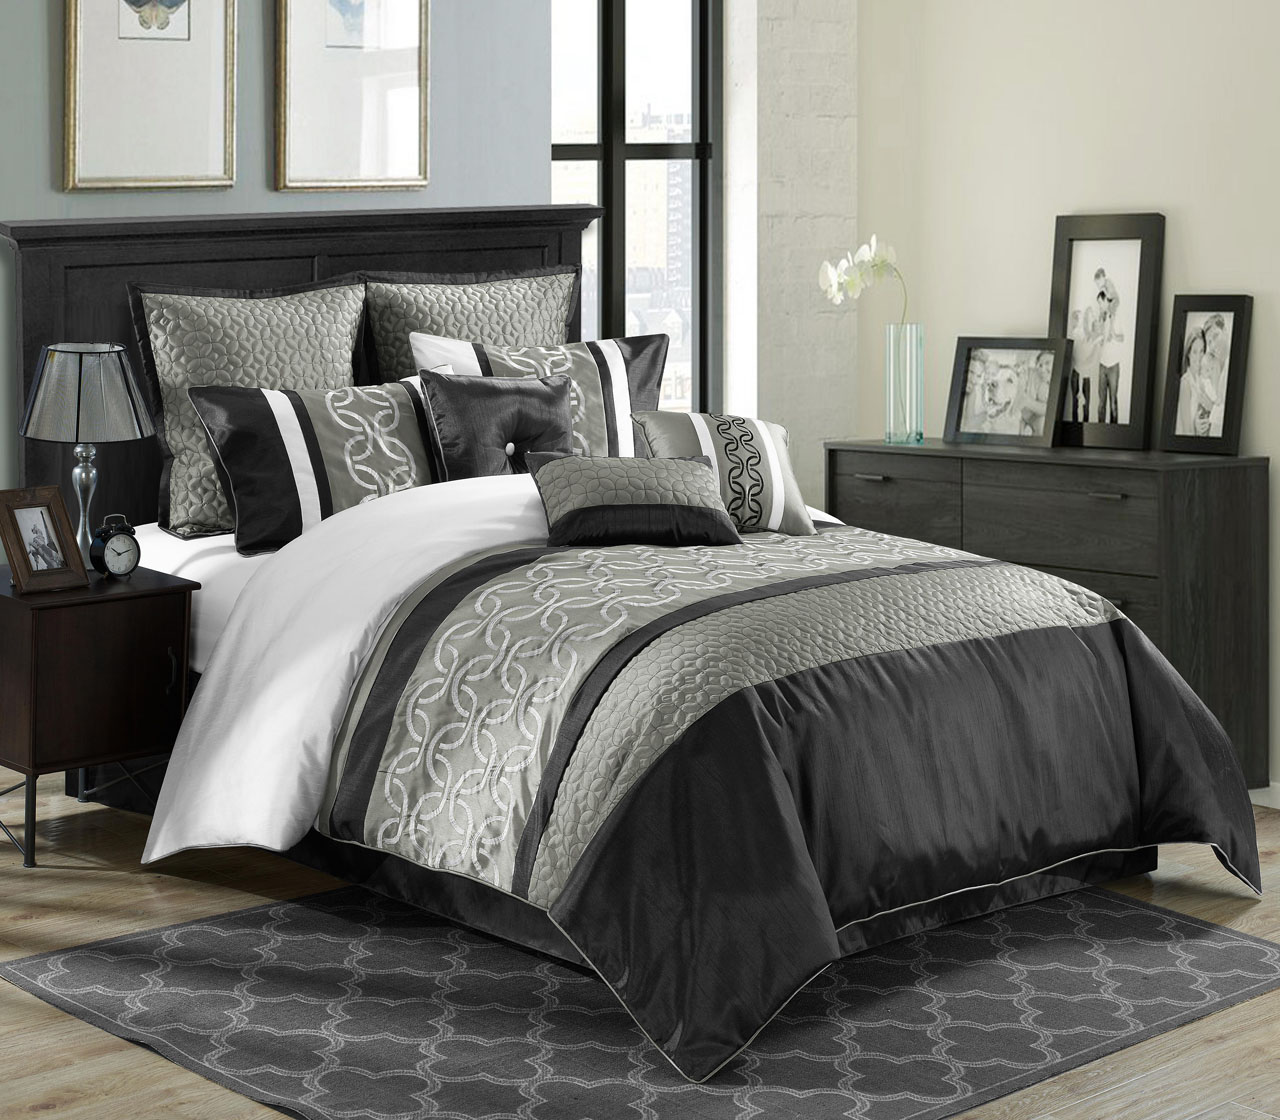 9 Piece Bordeaux Black Gray White Comforter Set Walmart Com